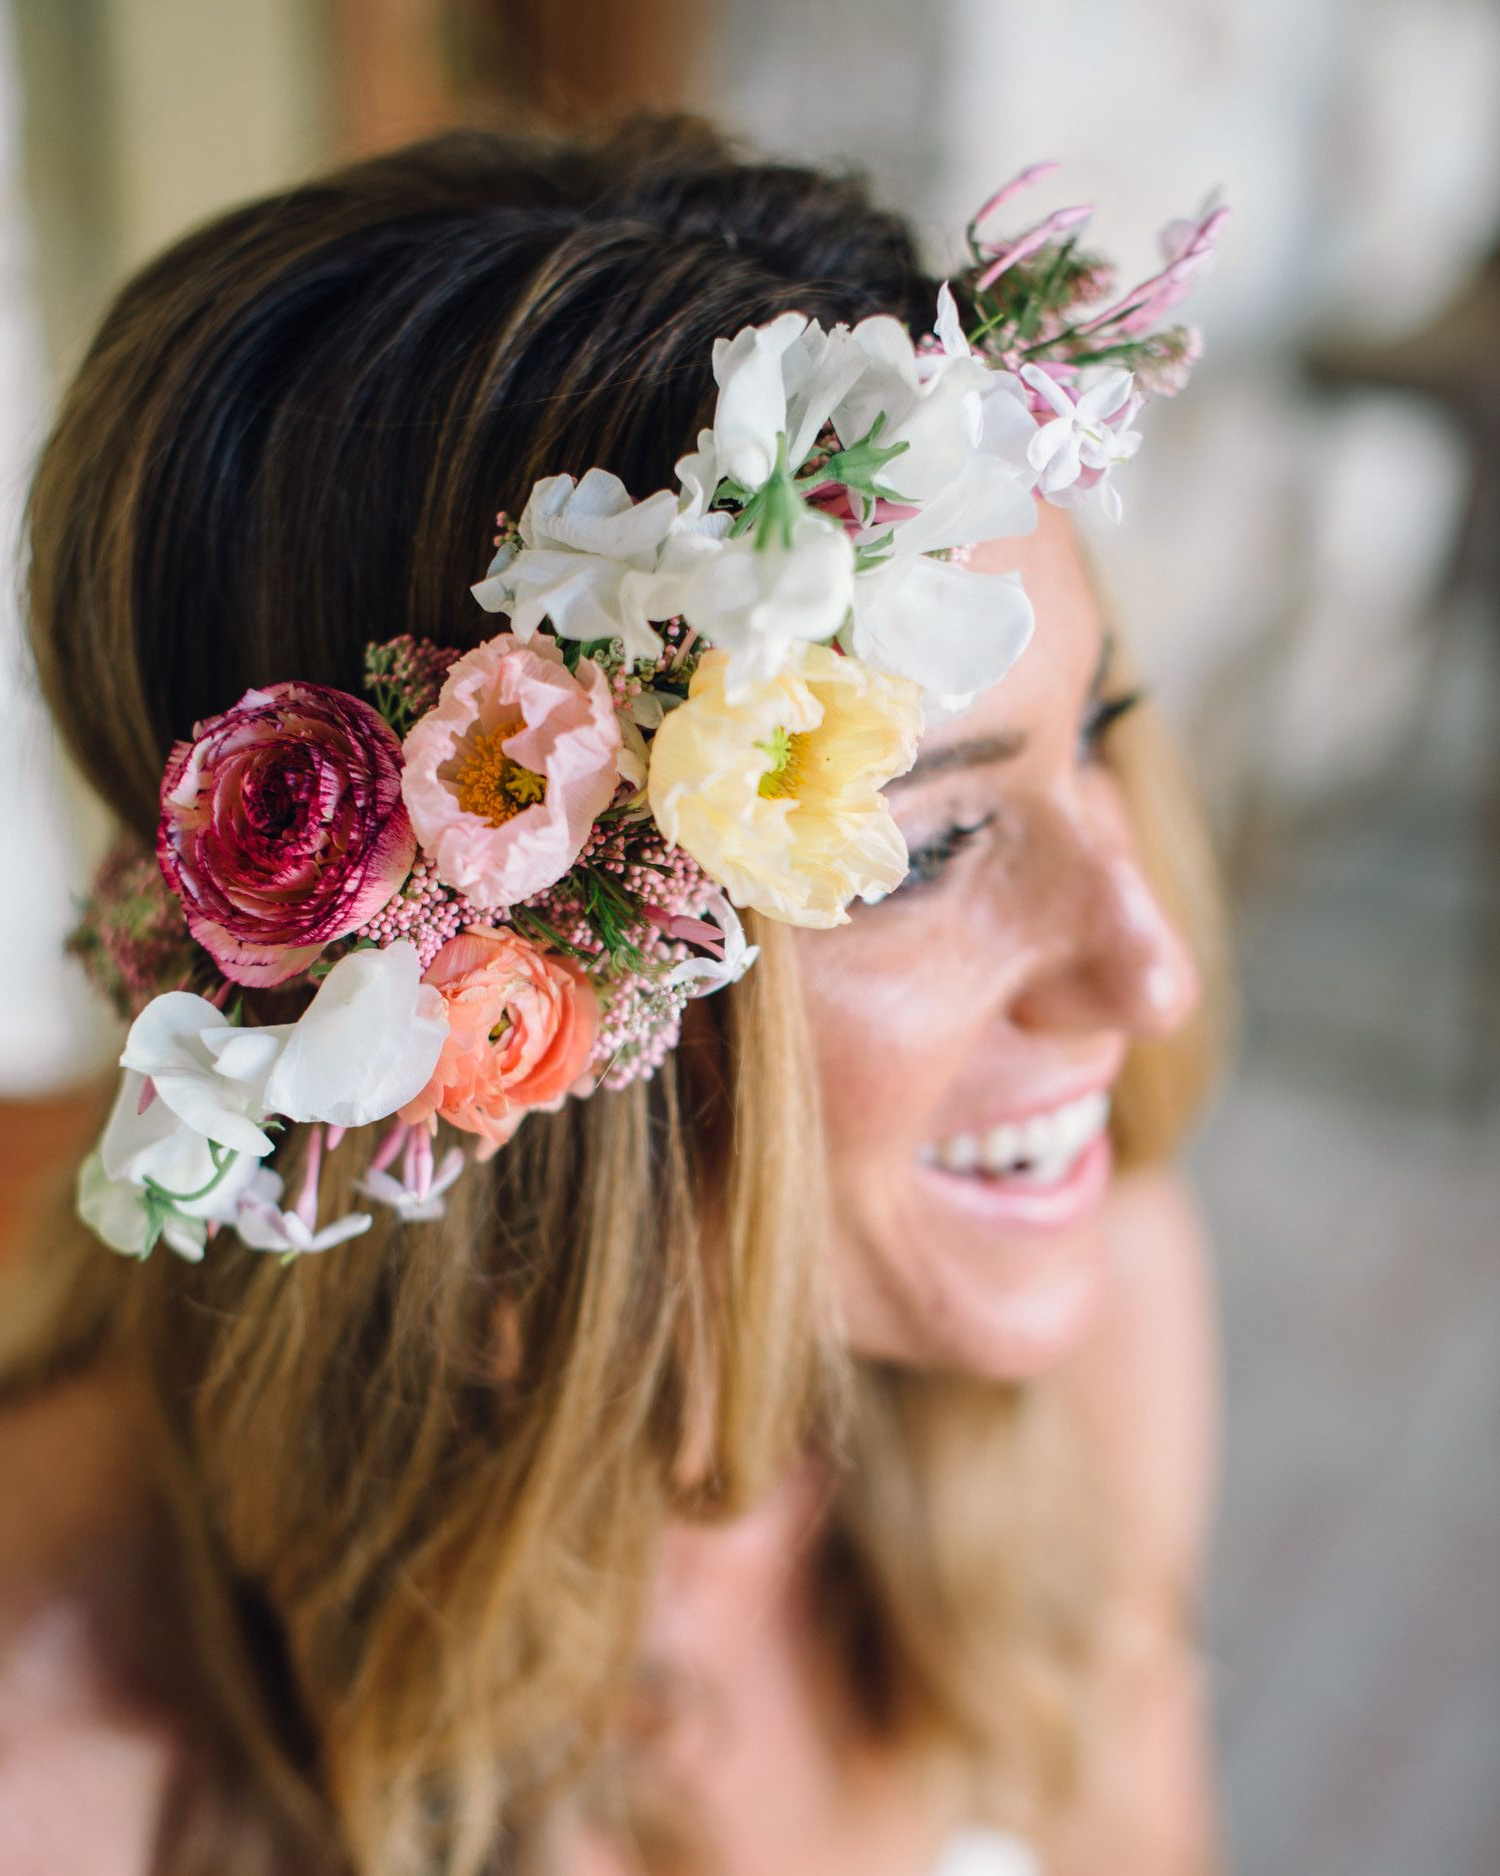 Favorite Relaxed And Regal Hairstyles For Wedding Throughout Boho Chic Wedding Ideas For Free Spirited Brides And Grooms (View 7 of 20)